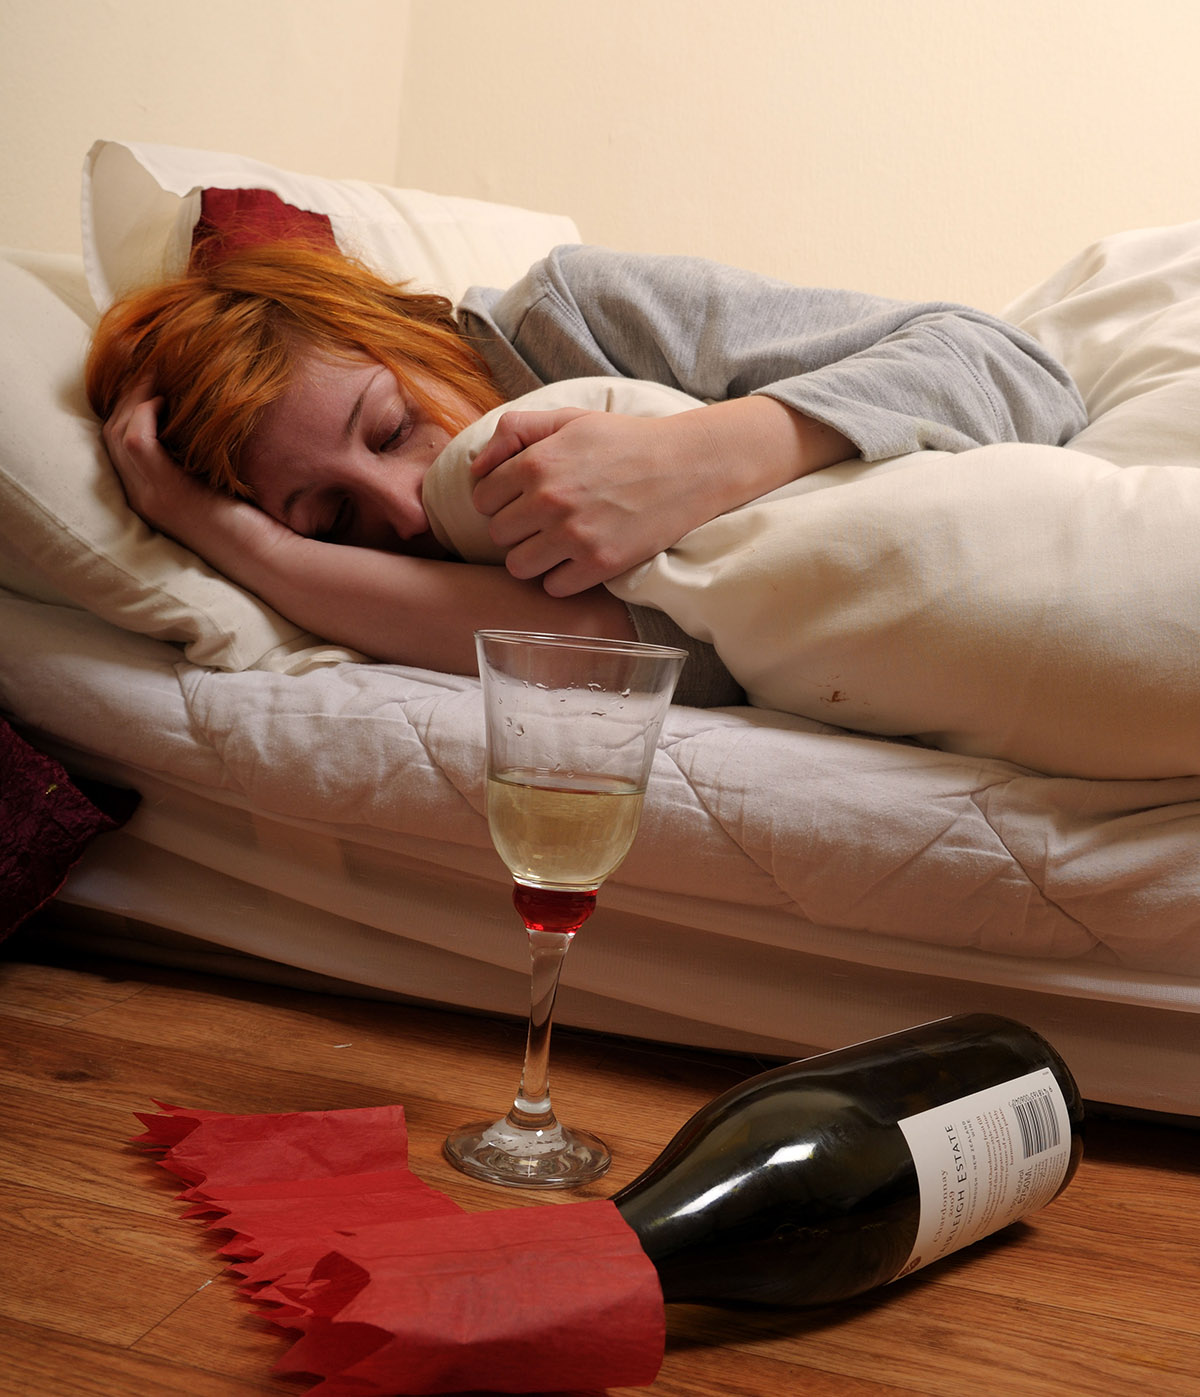 CC483E Young Women in Bed with Hangover after Party . Alamy